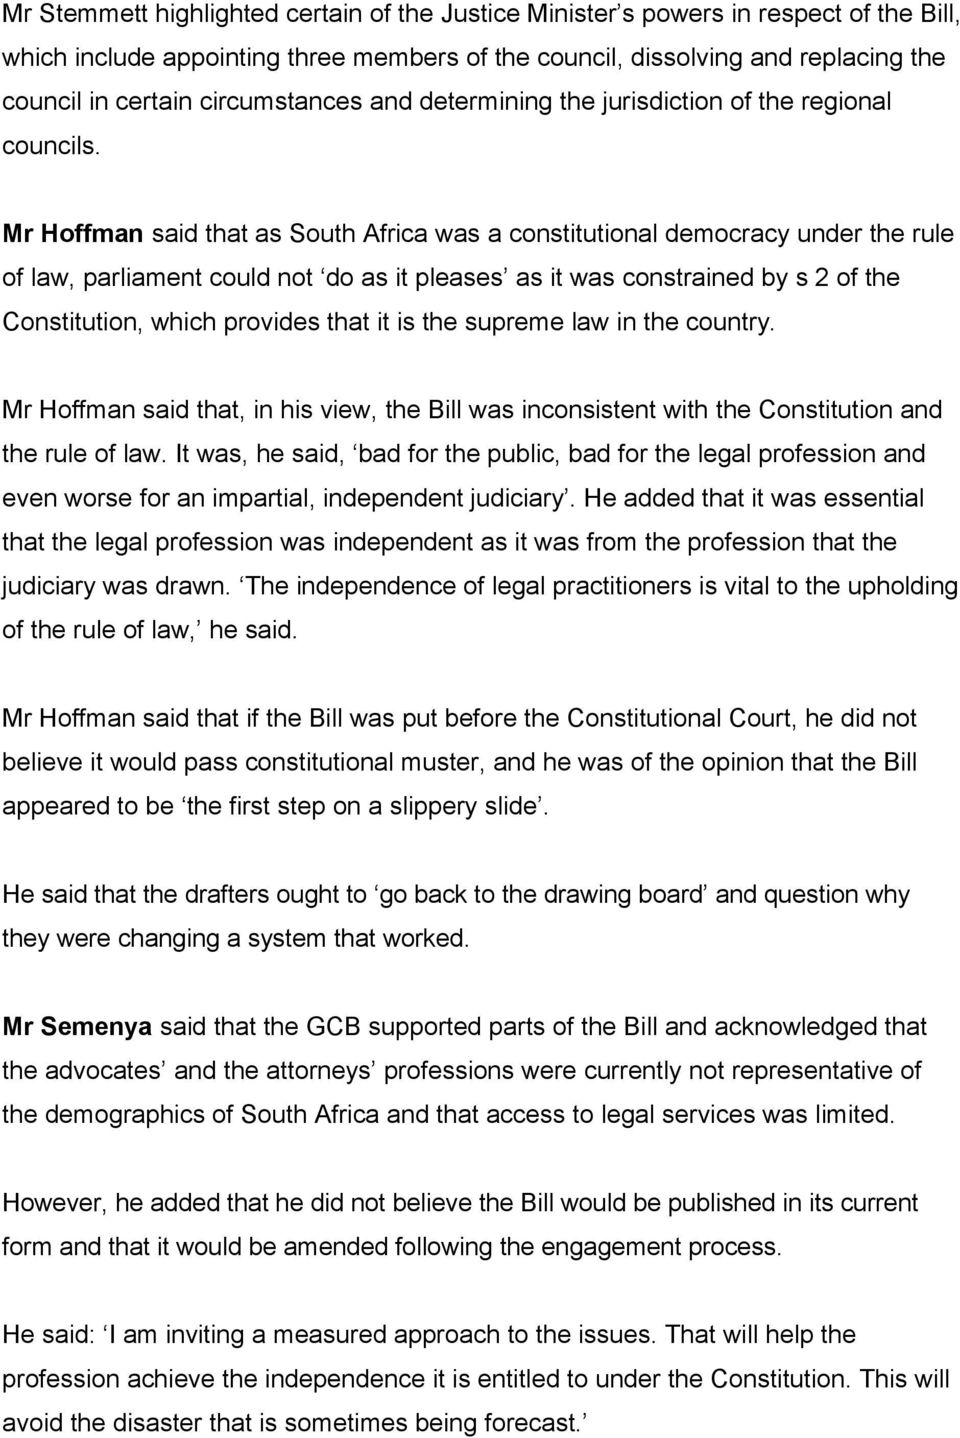 Mr Hoffman said that as South Africa was a constitutional democracy under the rule of law, parliament could not do as it pleases as it was constrained by s 2 of the Constitution, which provides that